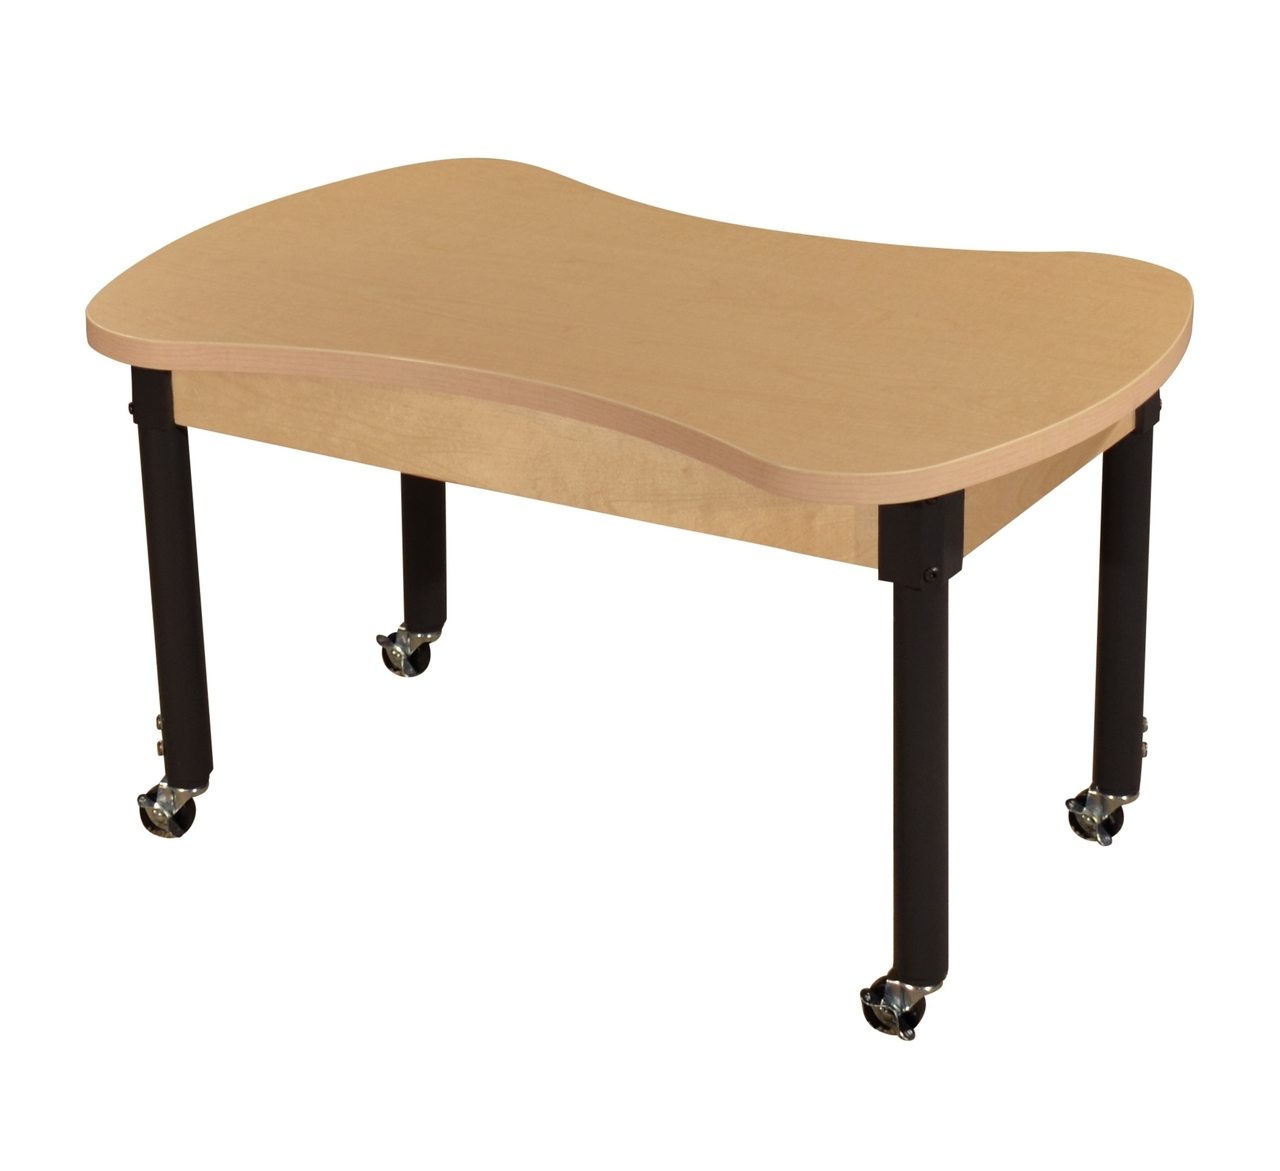 Mobile Synergy Junction 24 Inch X 36 High Pressure Laminate Table With Adjustable Legs 14-19 - Hpl2436ca1217c6 - Tables And Chairs HPL2436CA1217C6